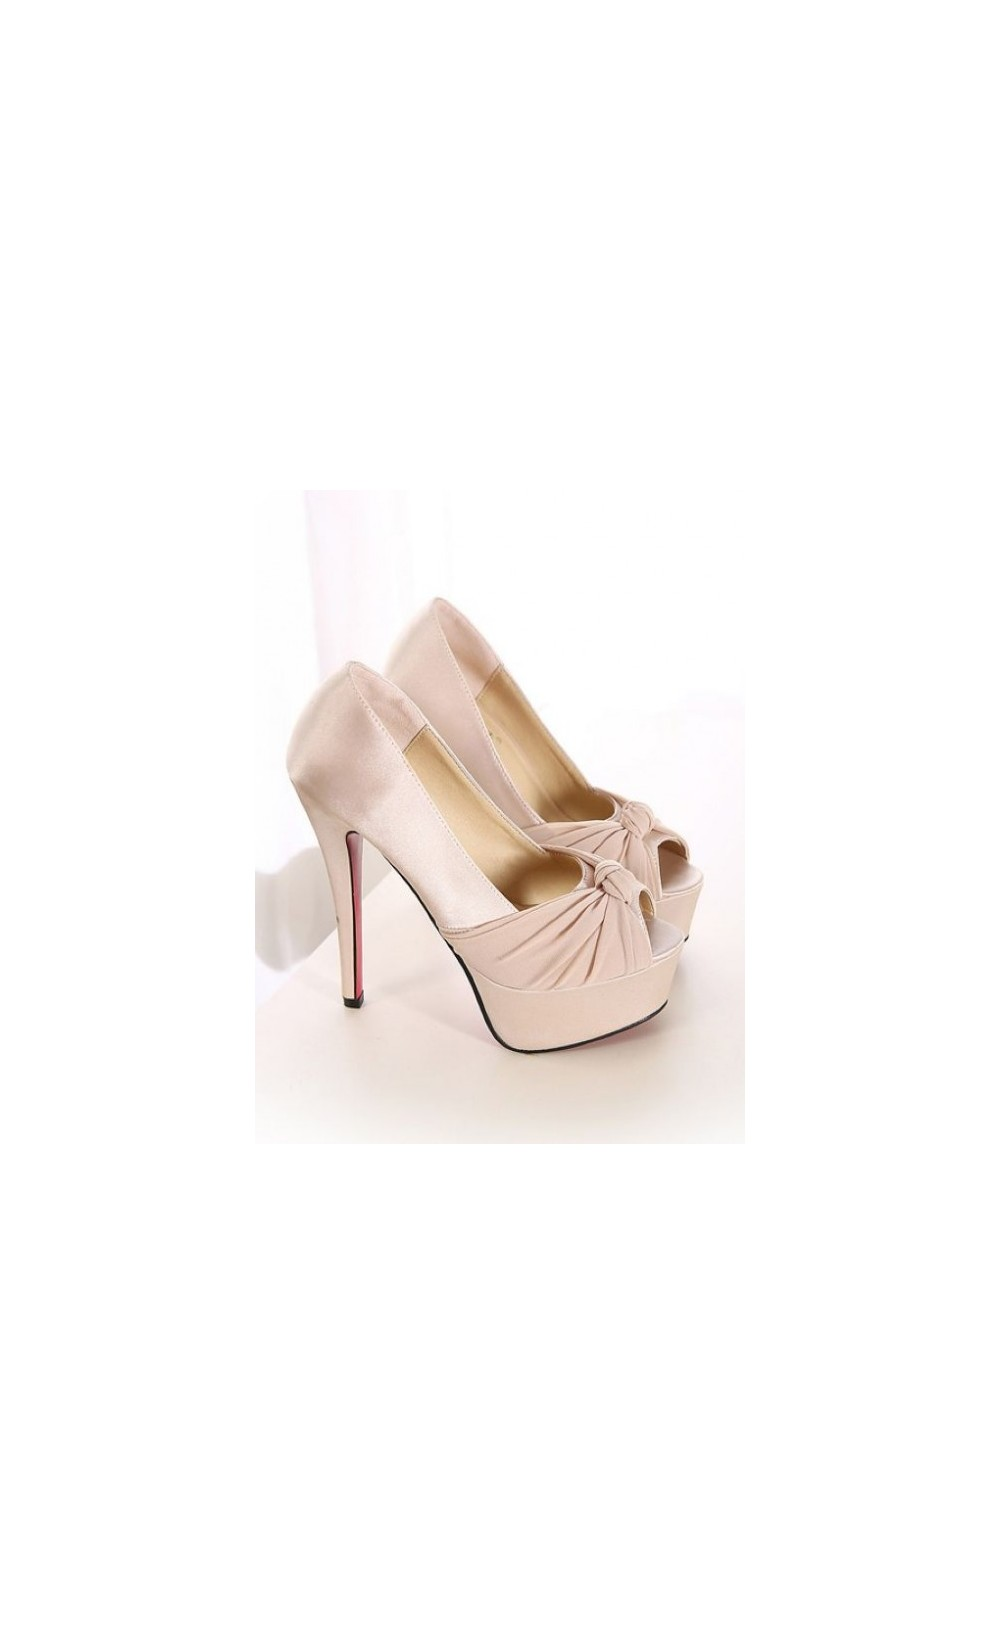 Luxury solid peep toe high heeled shoe